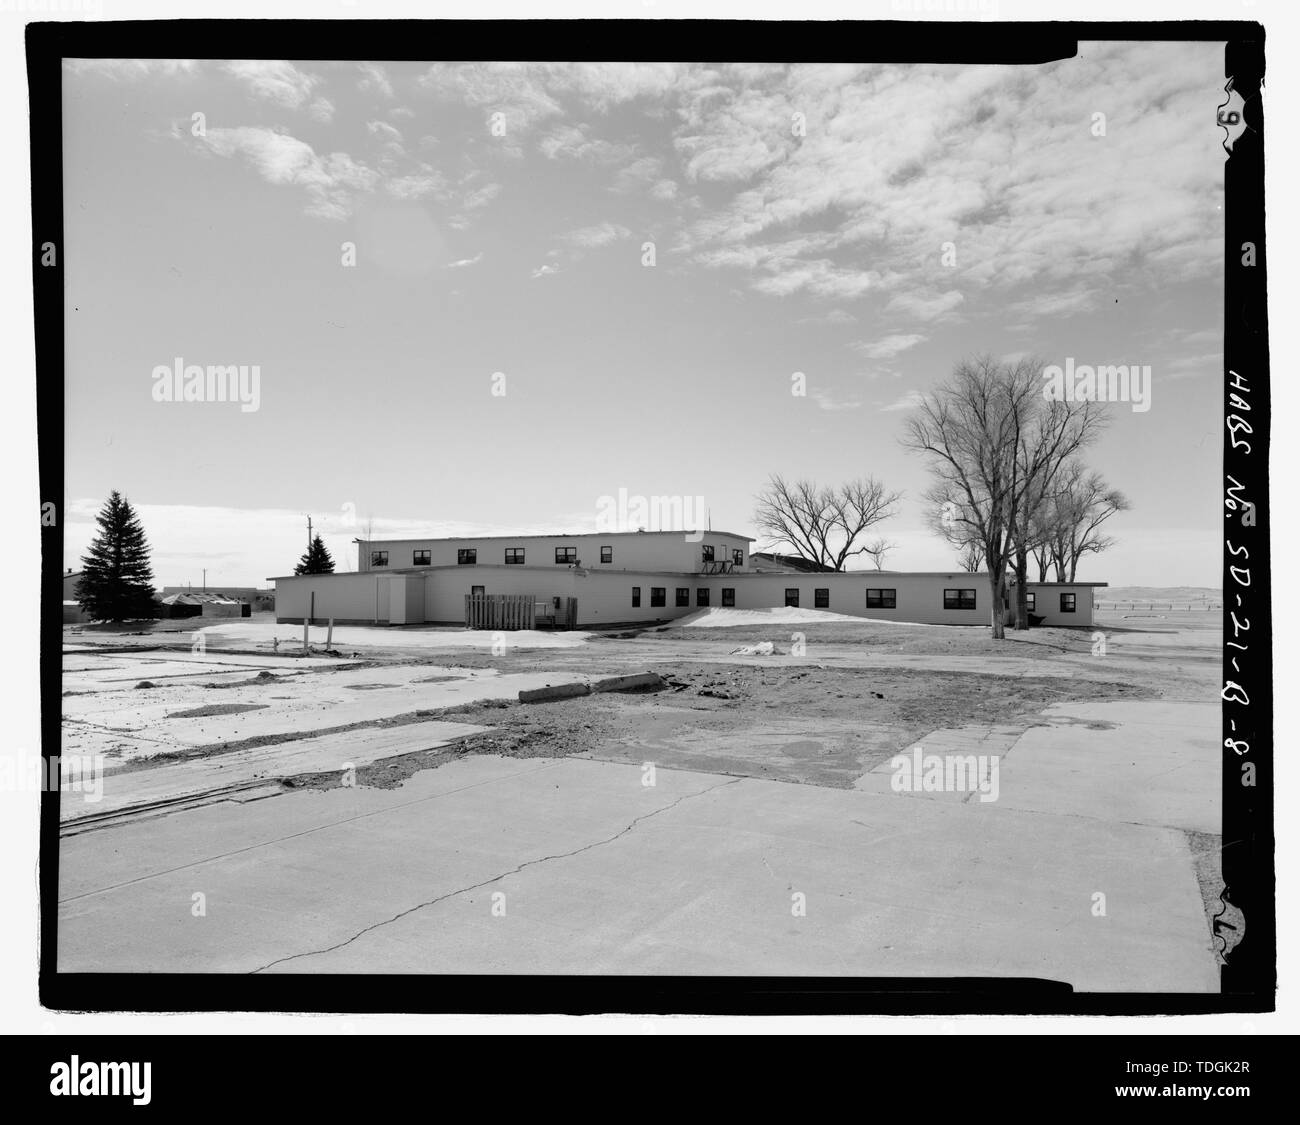 Northwest corner, view to southeast. - Ellsworth Air Force Base, Readiness Building, 810 Kenny Road, Blackhawk, Meade County, SD; Wilson and Company; U.S. Army Corps of Engineers; Jackson, Christiana, transmitter; Barbalace, Donald S, photographer; Anderson, Kenneth L, historian - Stock Image